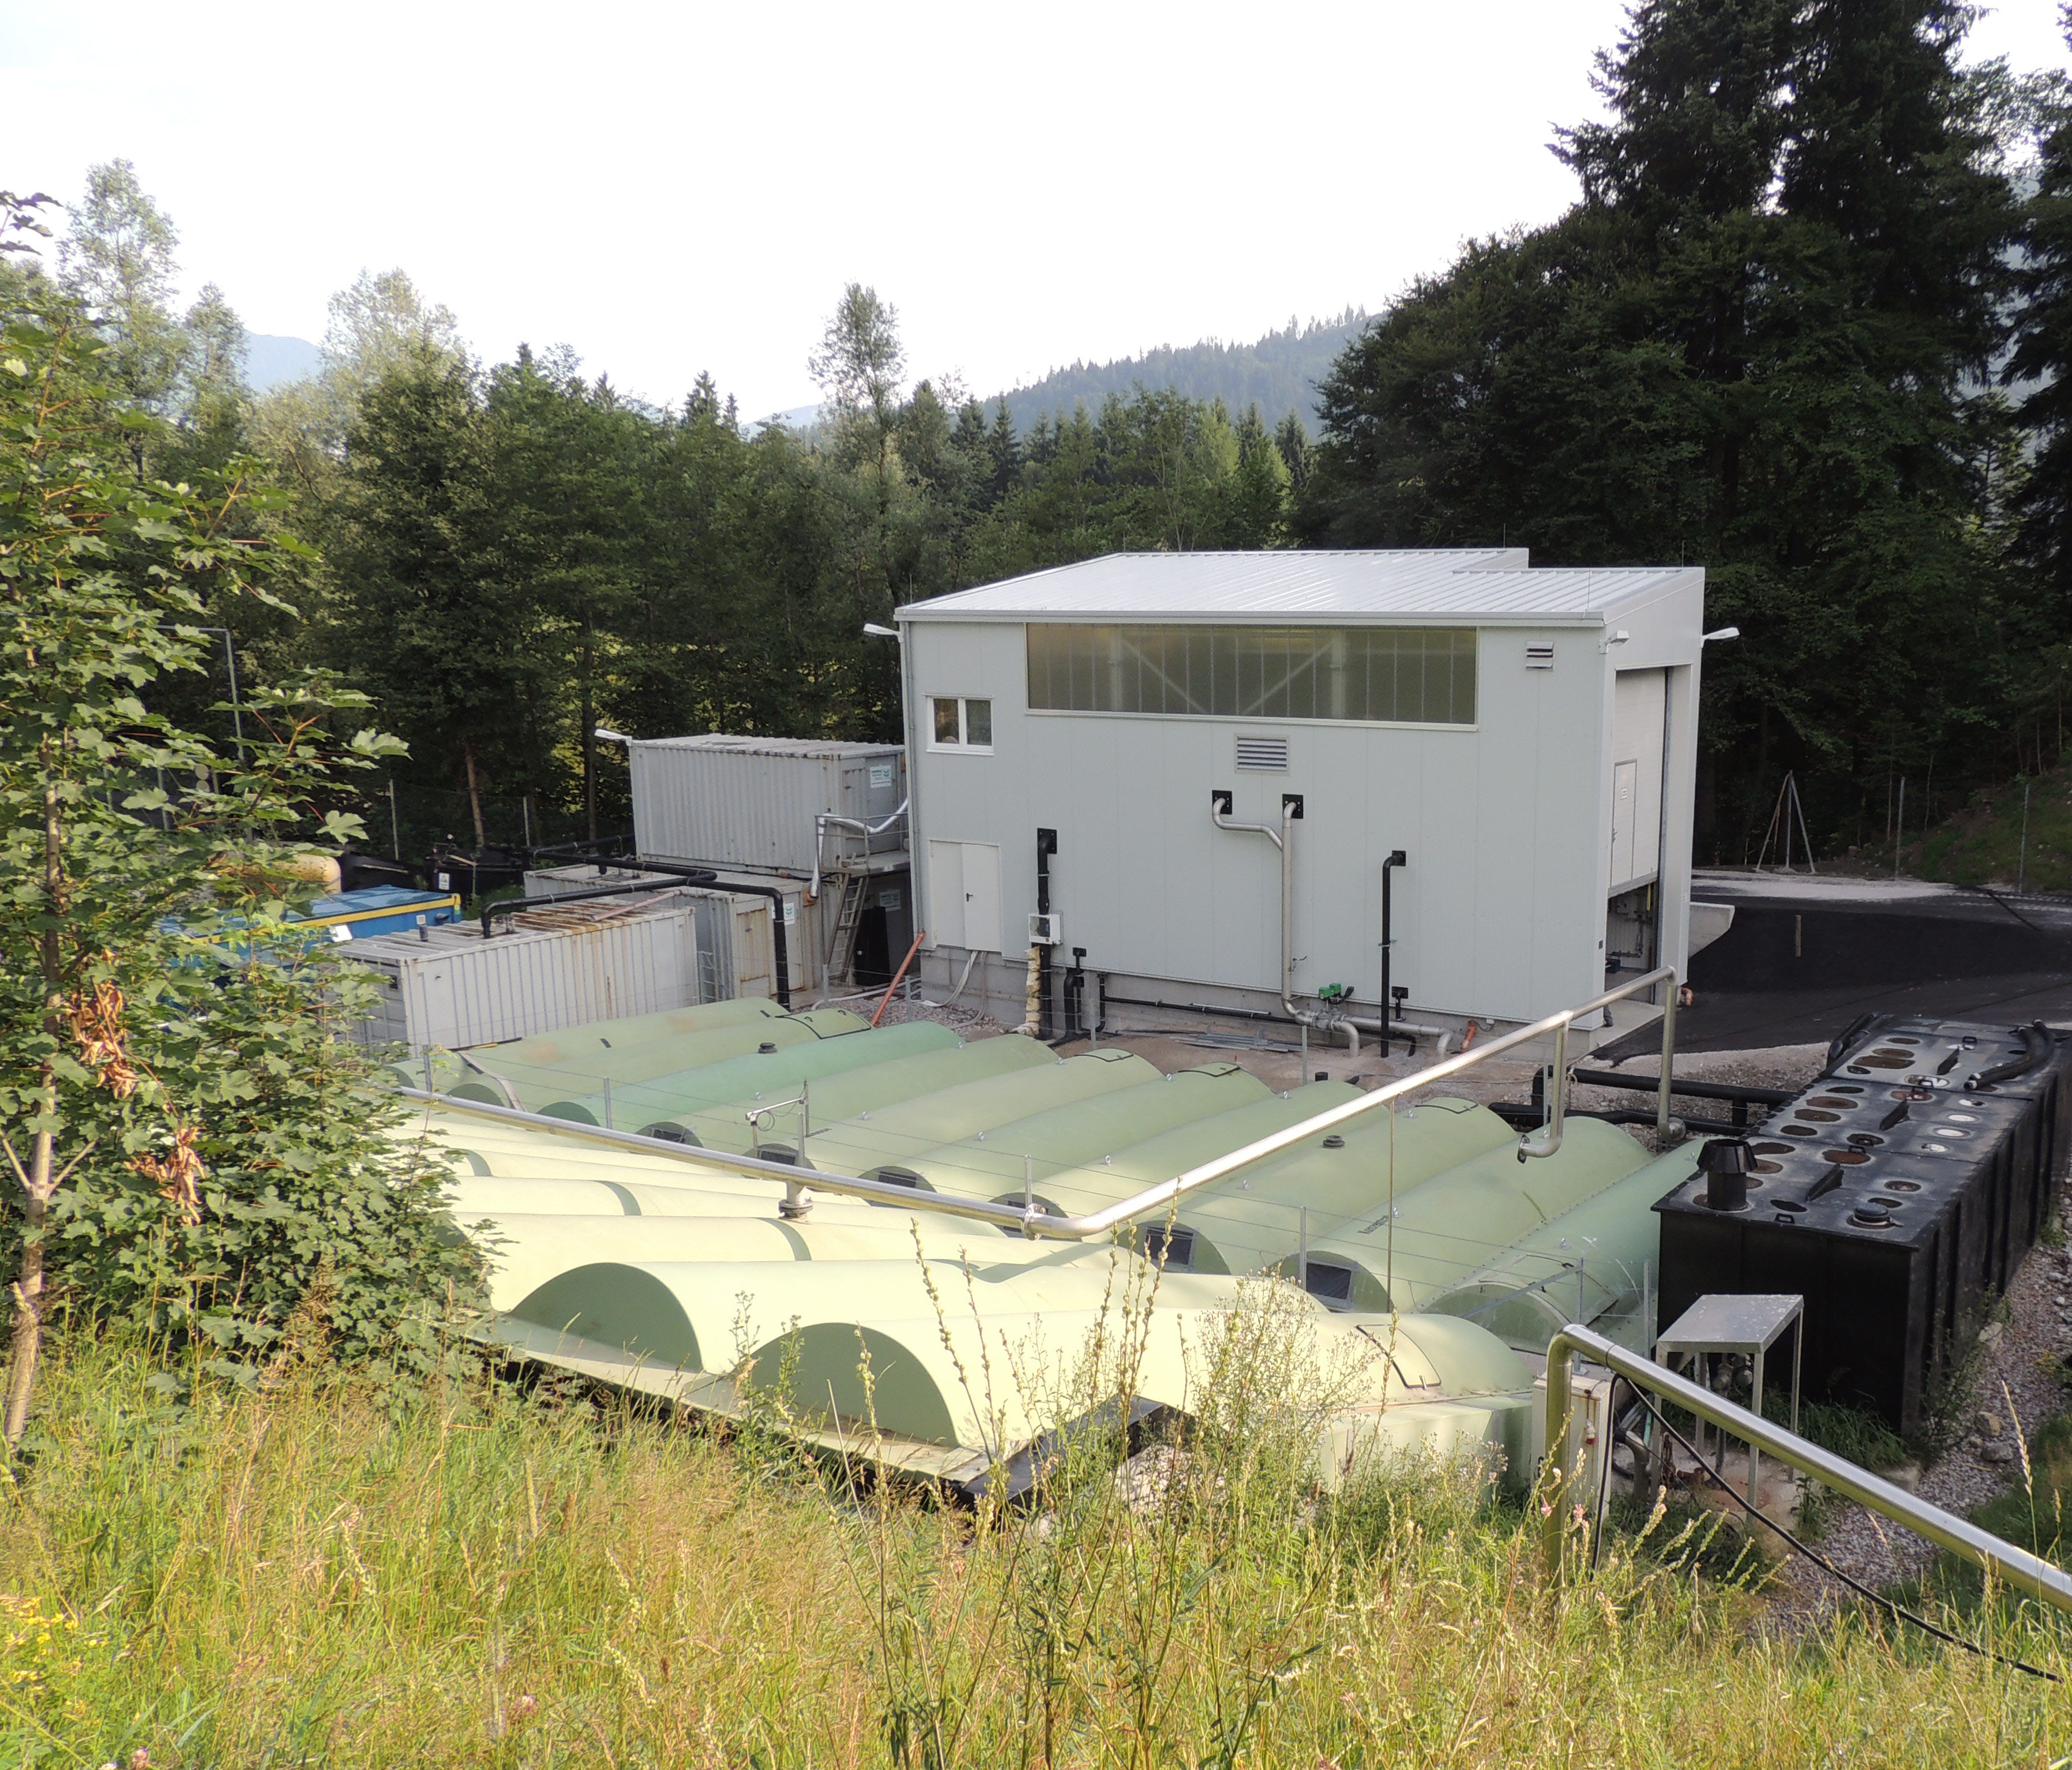 leachate treatment plant WEHRLE - 2010, Land Tirol: Betrieb / Operation 2010-2011, Woergl, Riederberg (Austria)